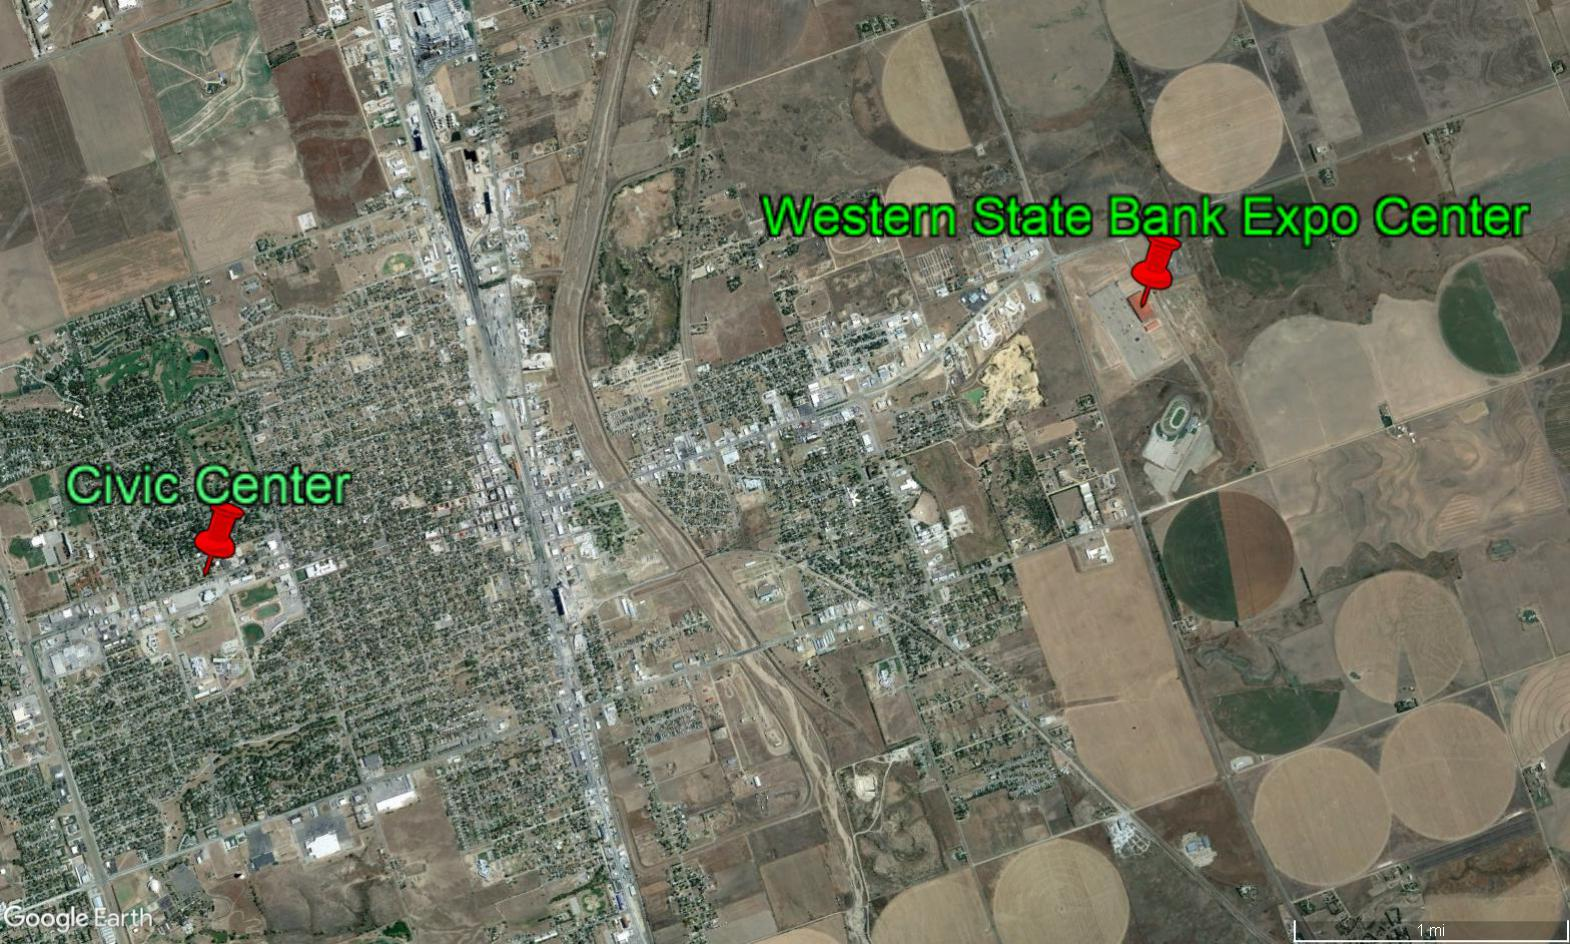 The Ford County clerk moved Dodge City's lone polling place from the more central civic center to the Western State Bank Expo Center on the edge of town. (Photo from Google Earth)